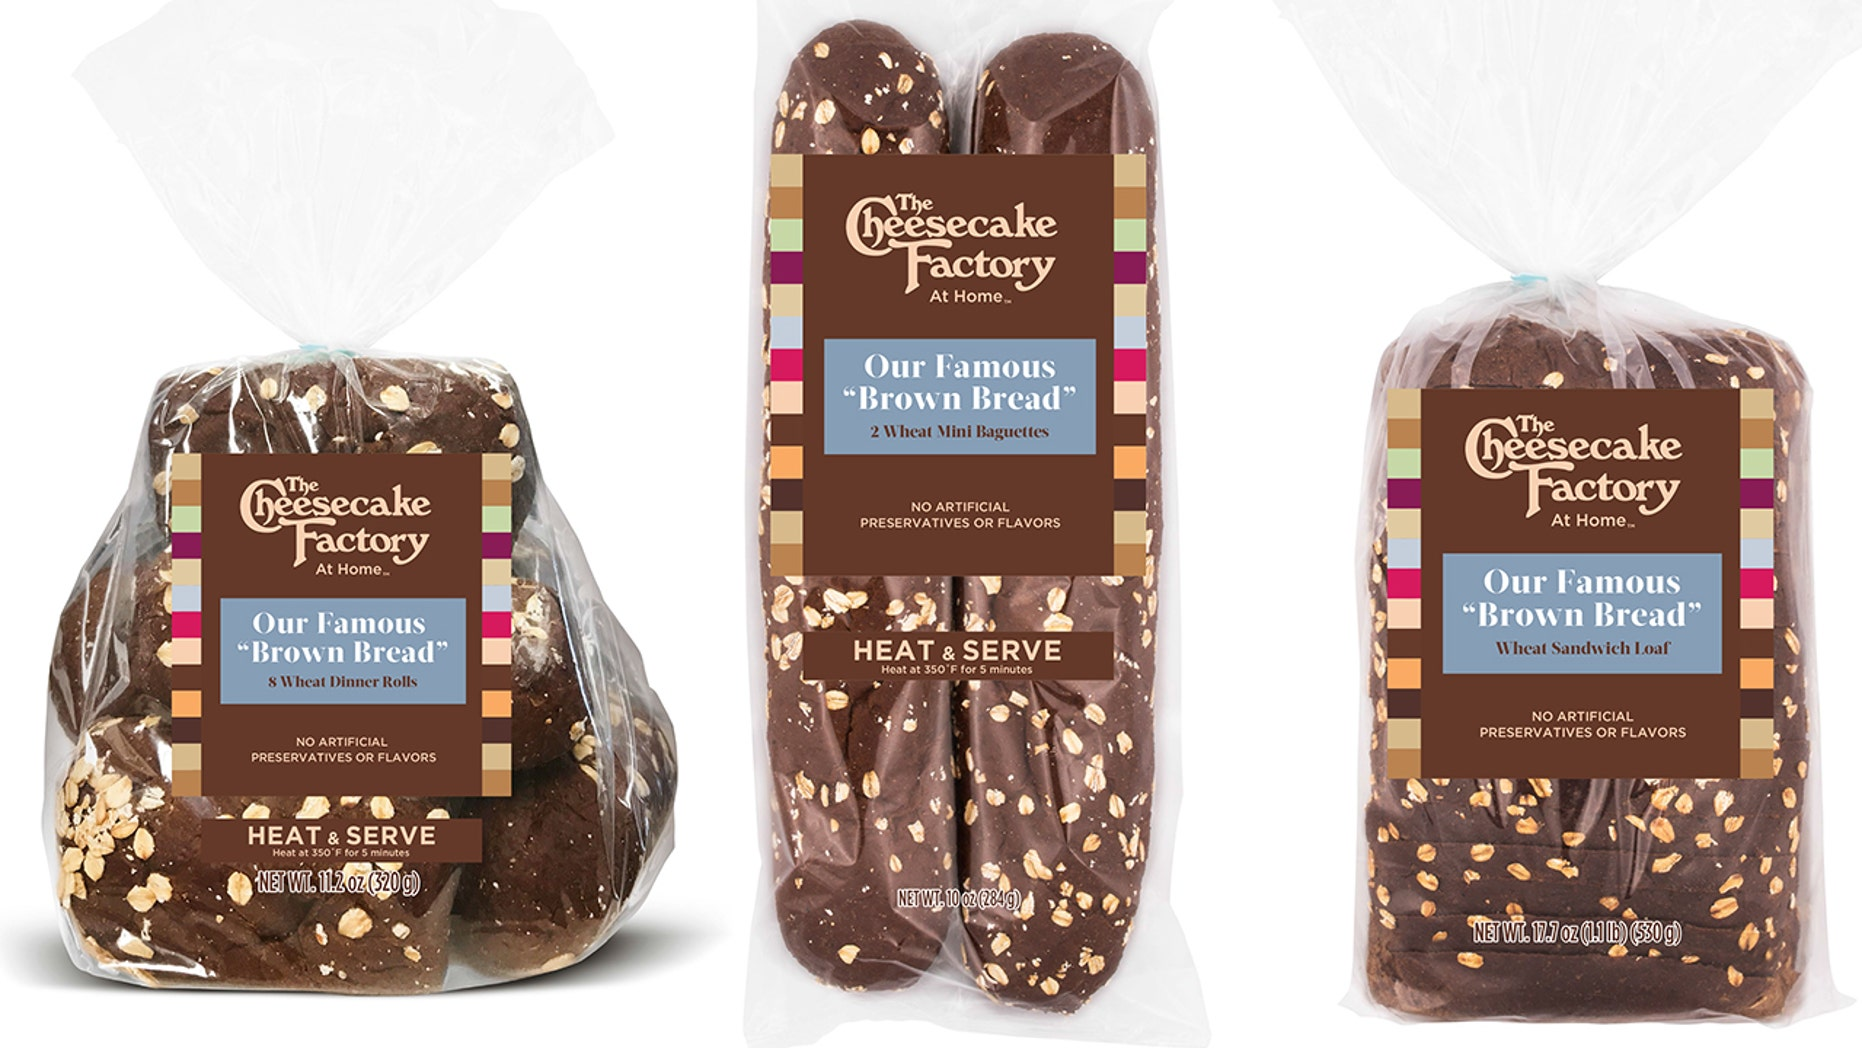 You'll soon be able to enjoy The Cheesecake Factory's famous Brown Bread at home.